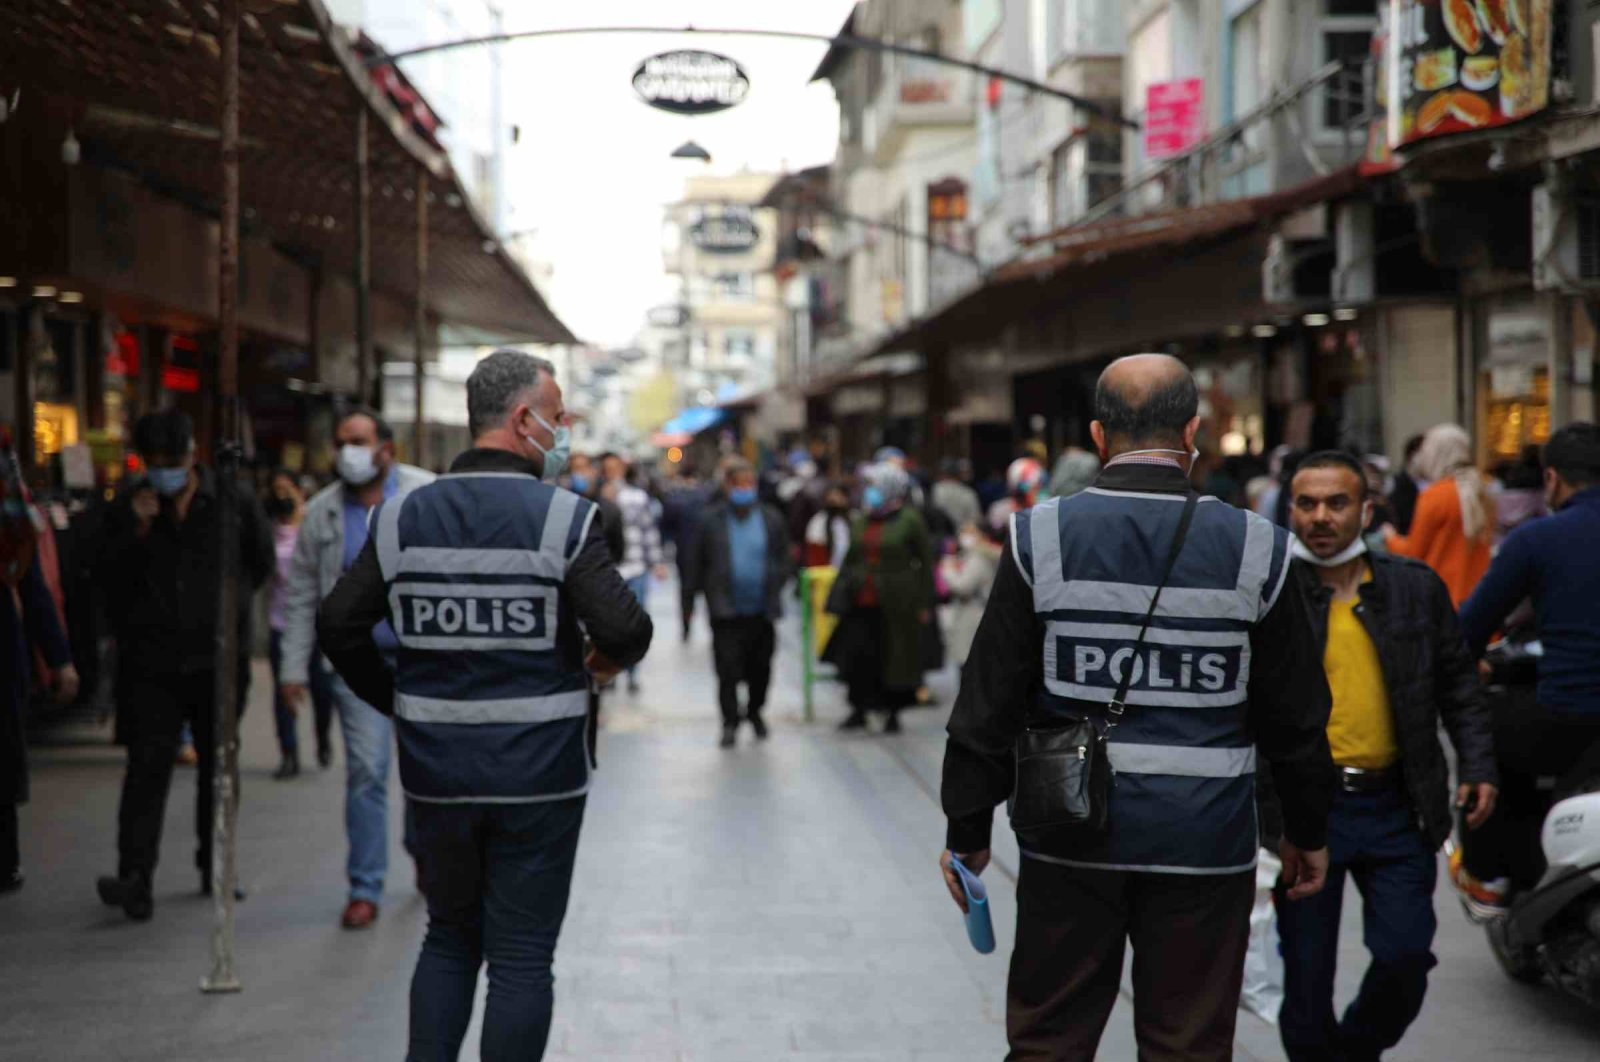 Police officers patrol a street to enforce pandemic rules, in Gaziantep, southern Turkey, April 9, 2021. (DHA PHOTO)